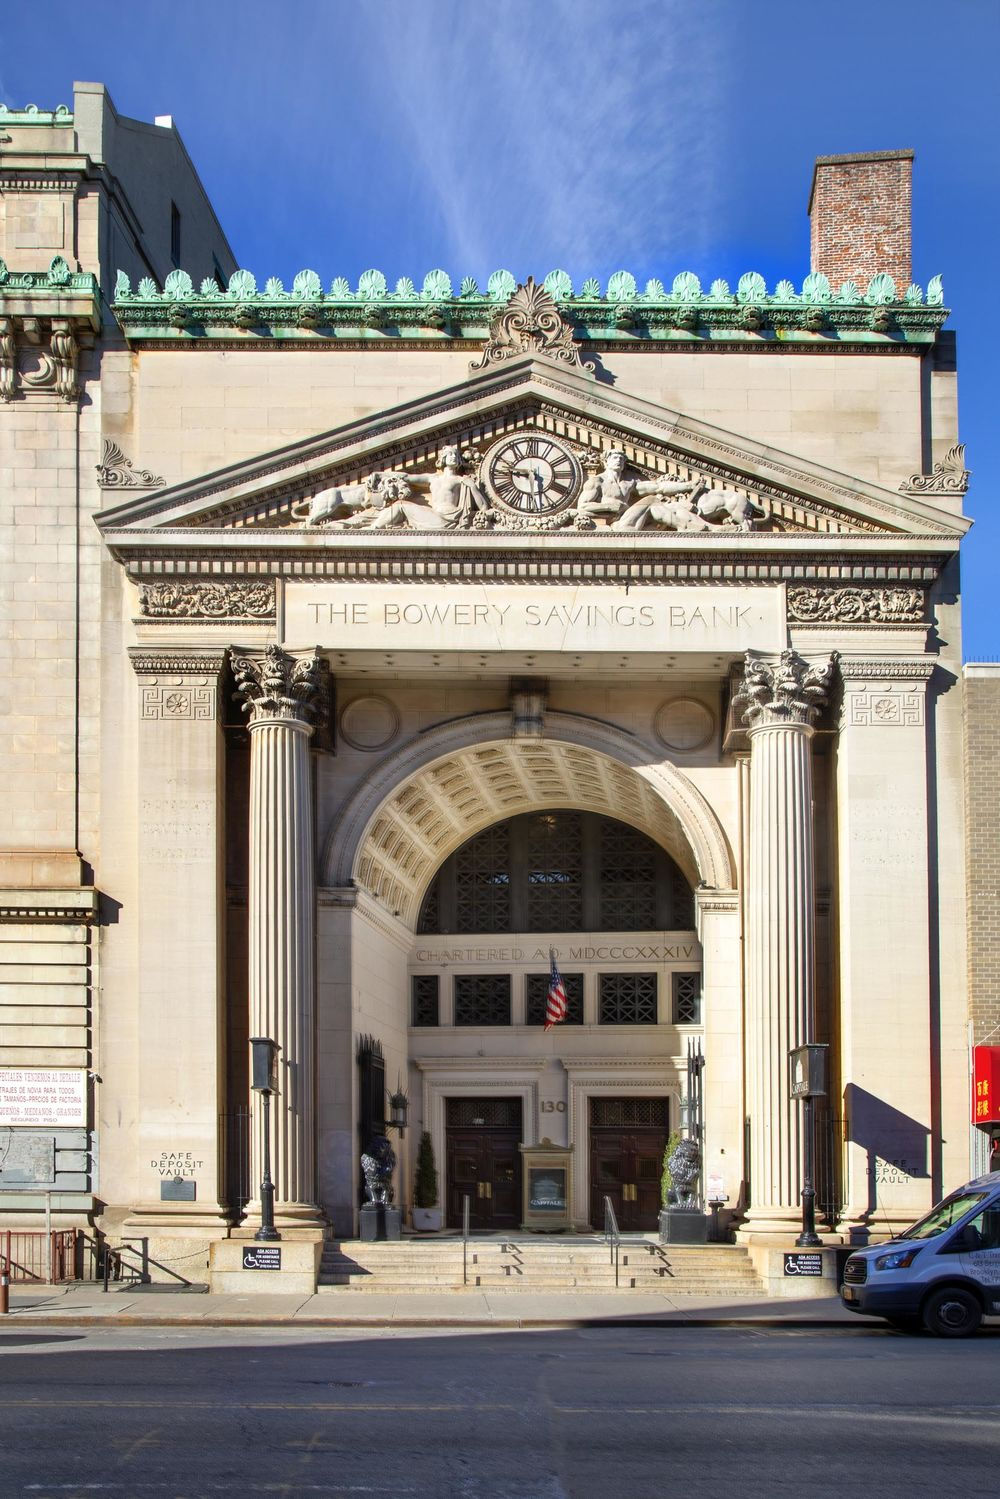 relates to Bowery Savings Bank Heads to Auction in Unconventional Real Estate Arrangement